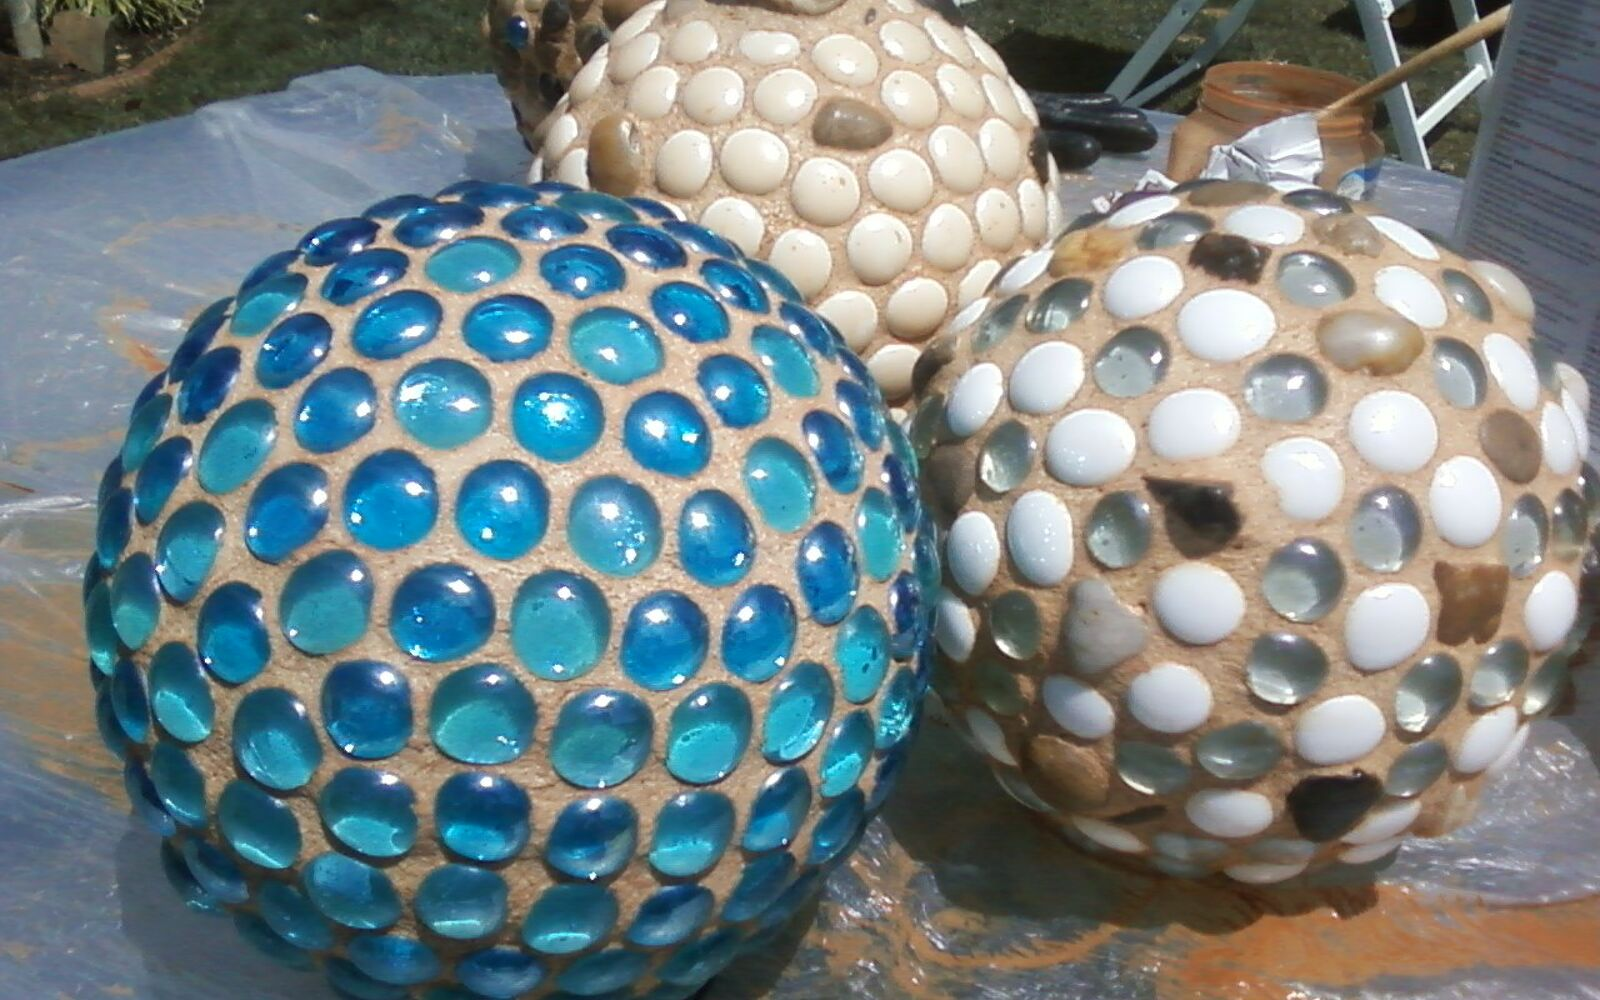 s 30 ways for you to style your garden, Bedazzle Globes As Garden Centerpieces